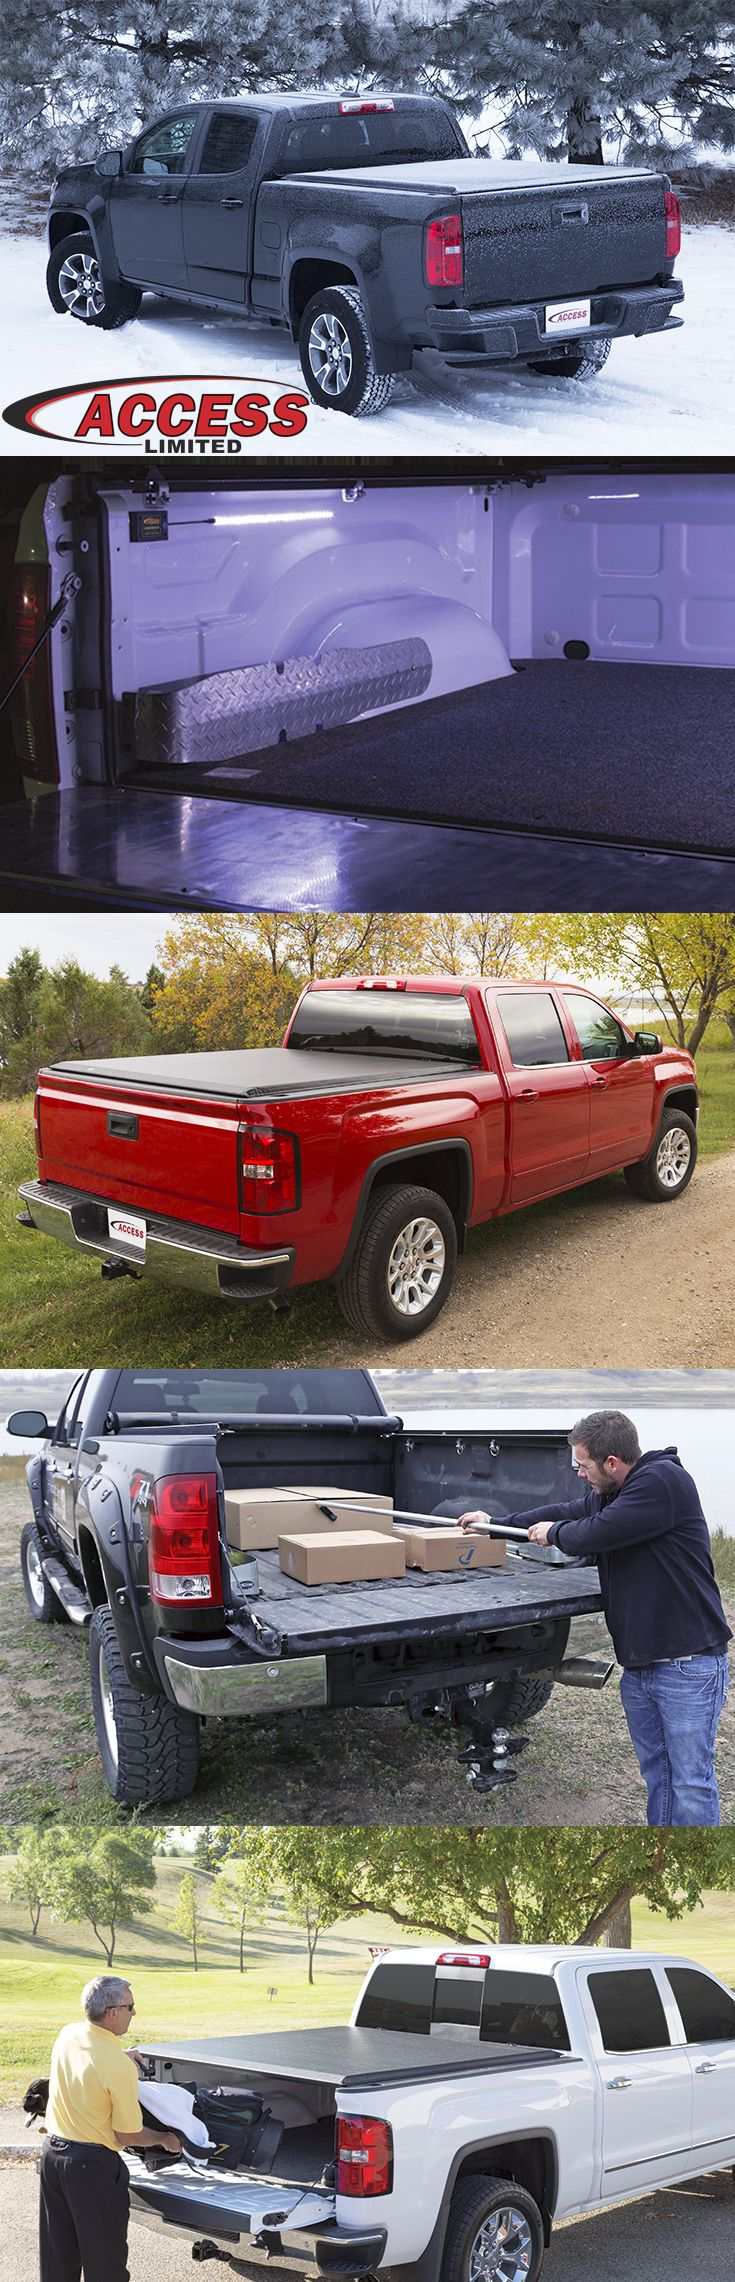 The access limited roll up cover is for the truck owner who wants the